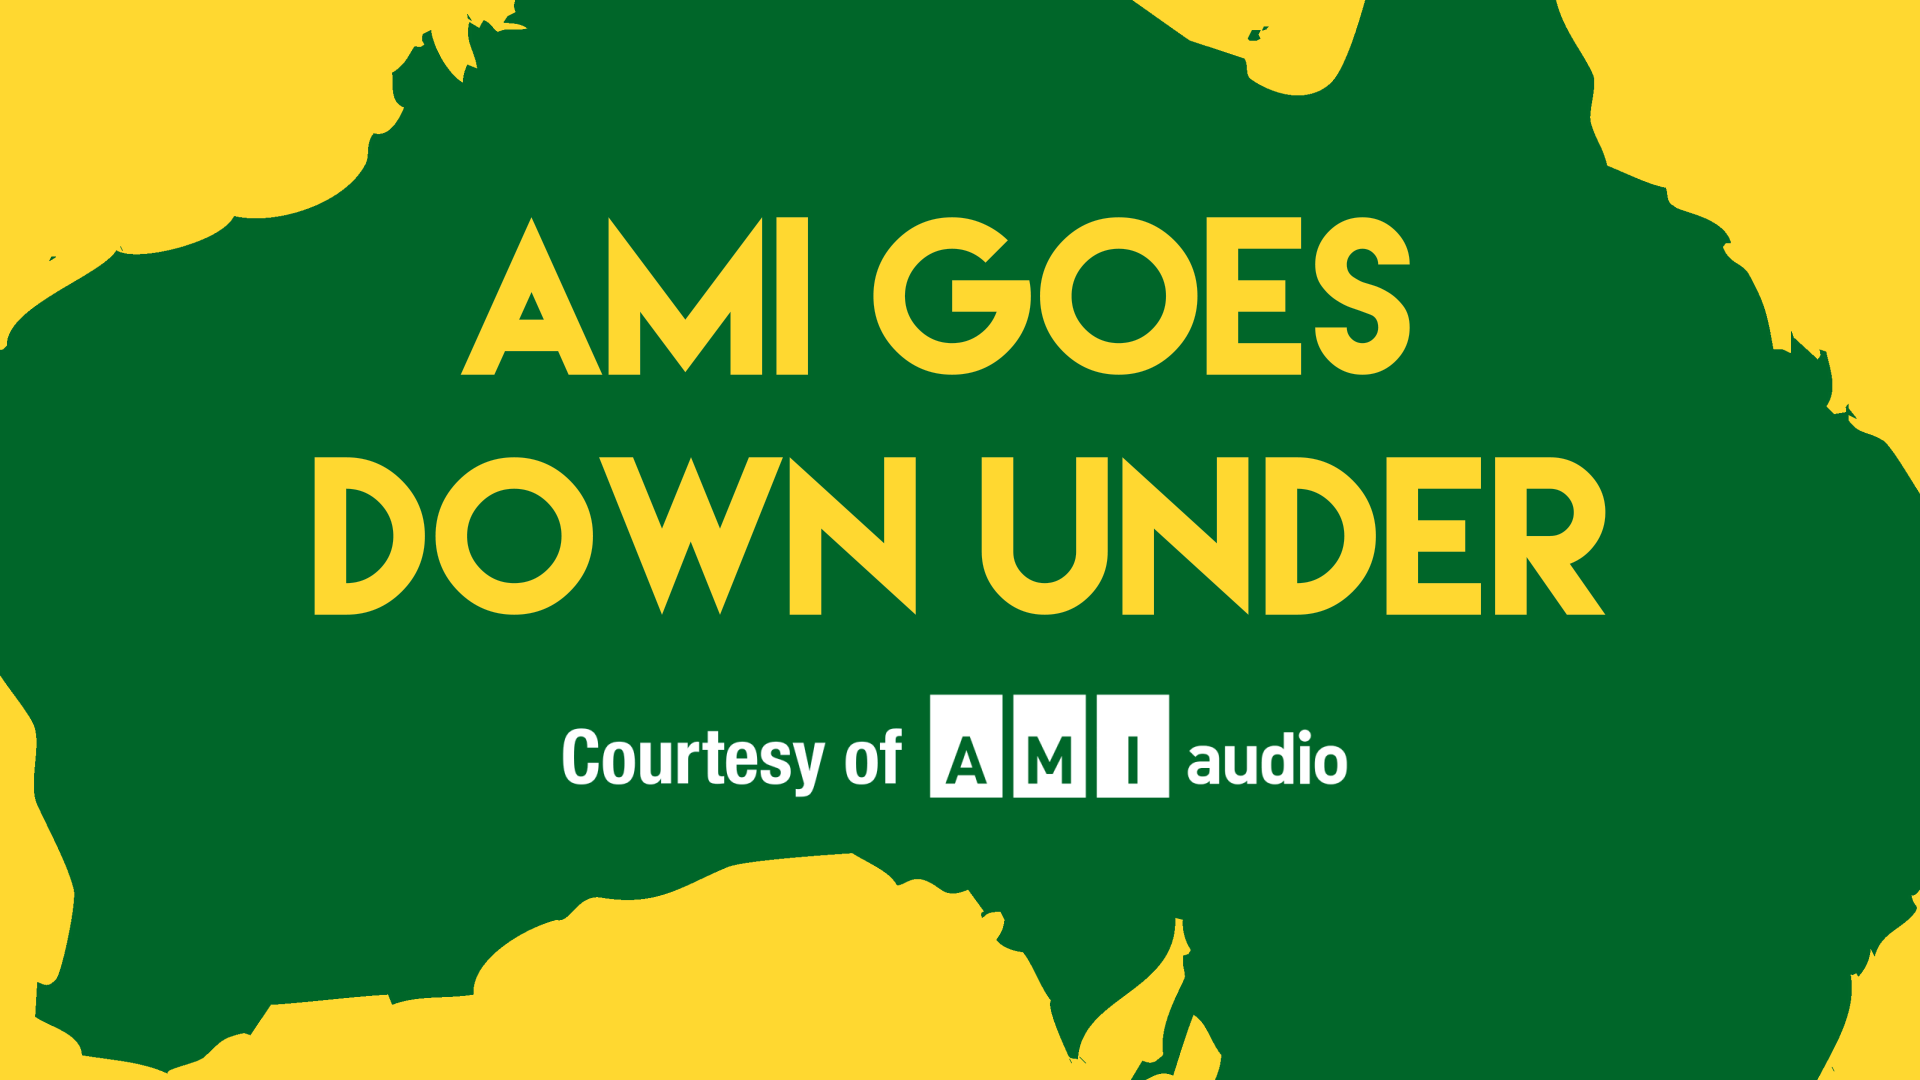 Image Reads: AMI Goes Down Under Courtesy of AMI-audio